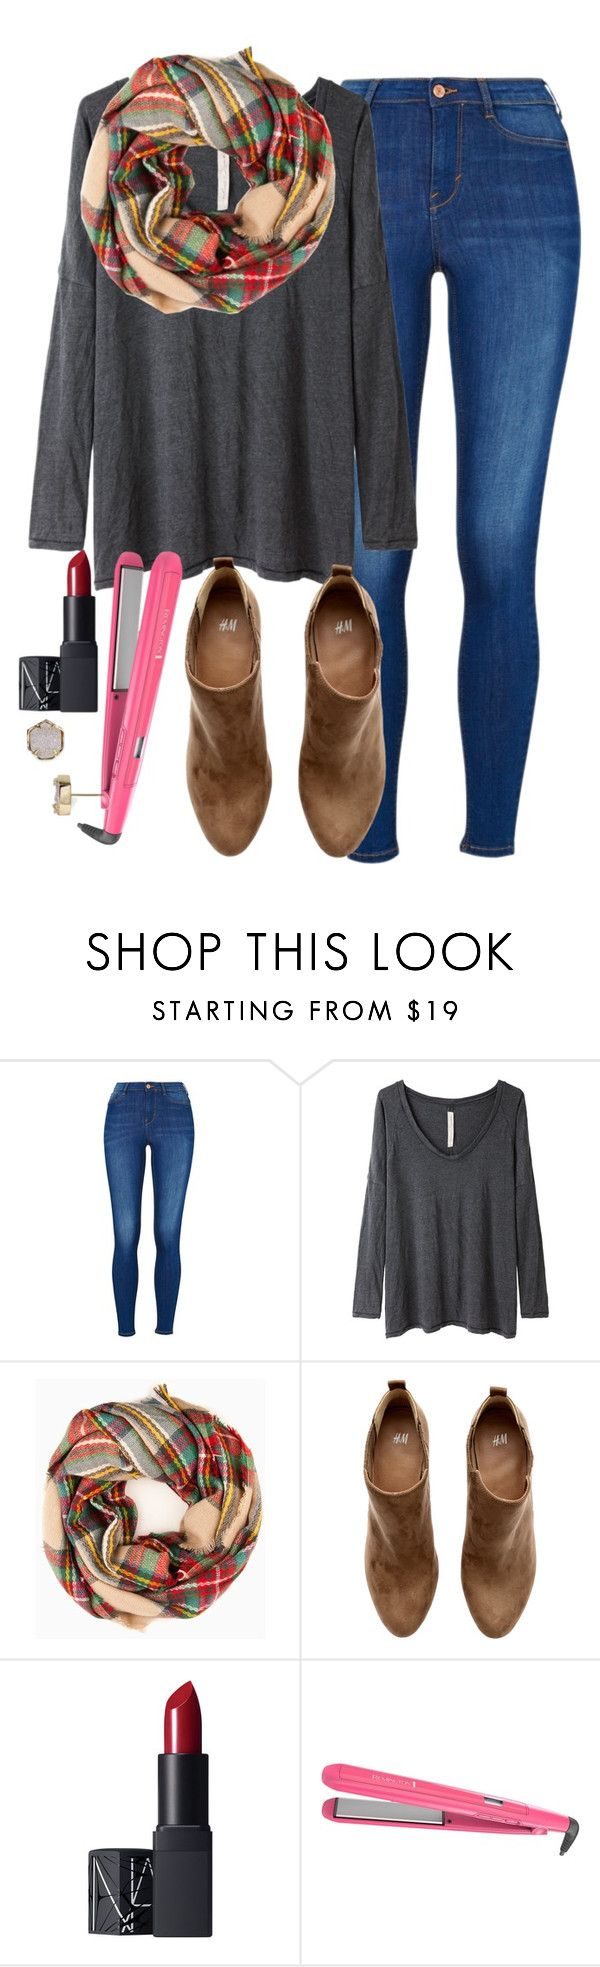 17 Best ideas about Cute Winter Clothes on Pinterest | Fall ...